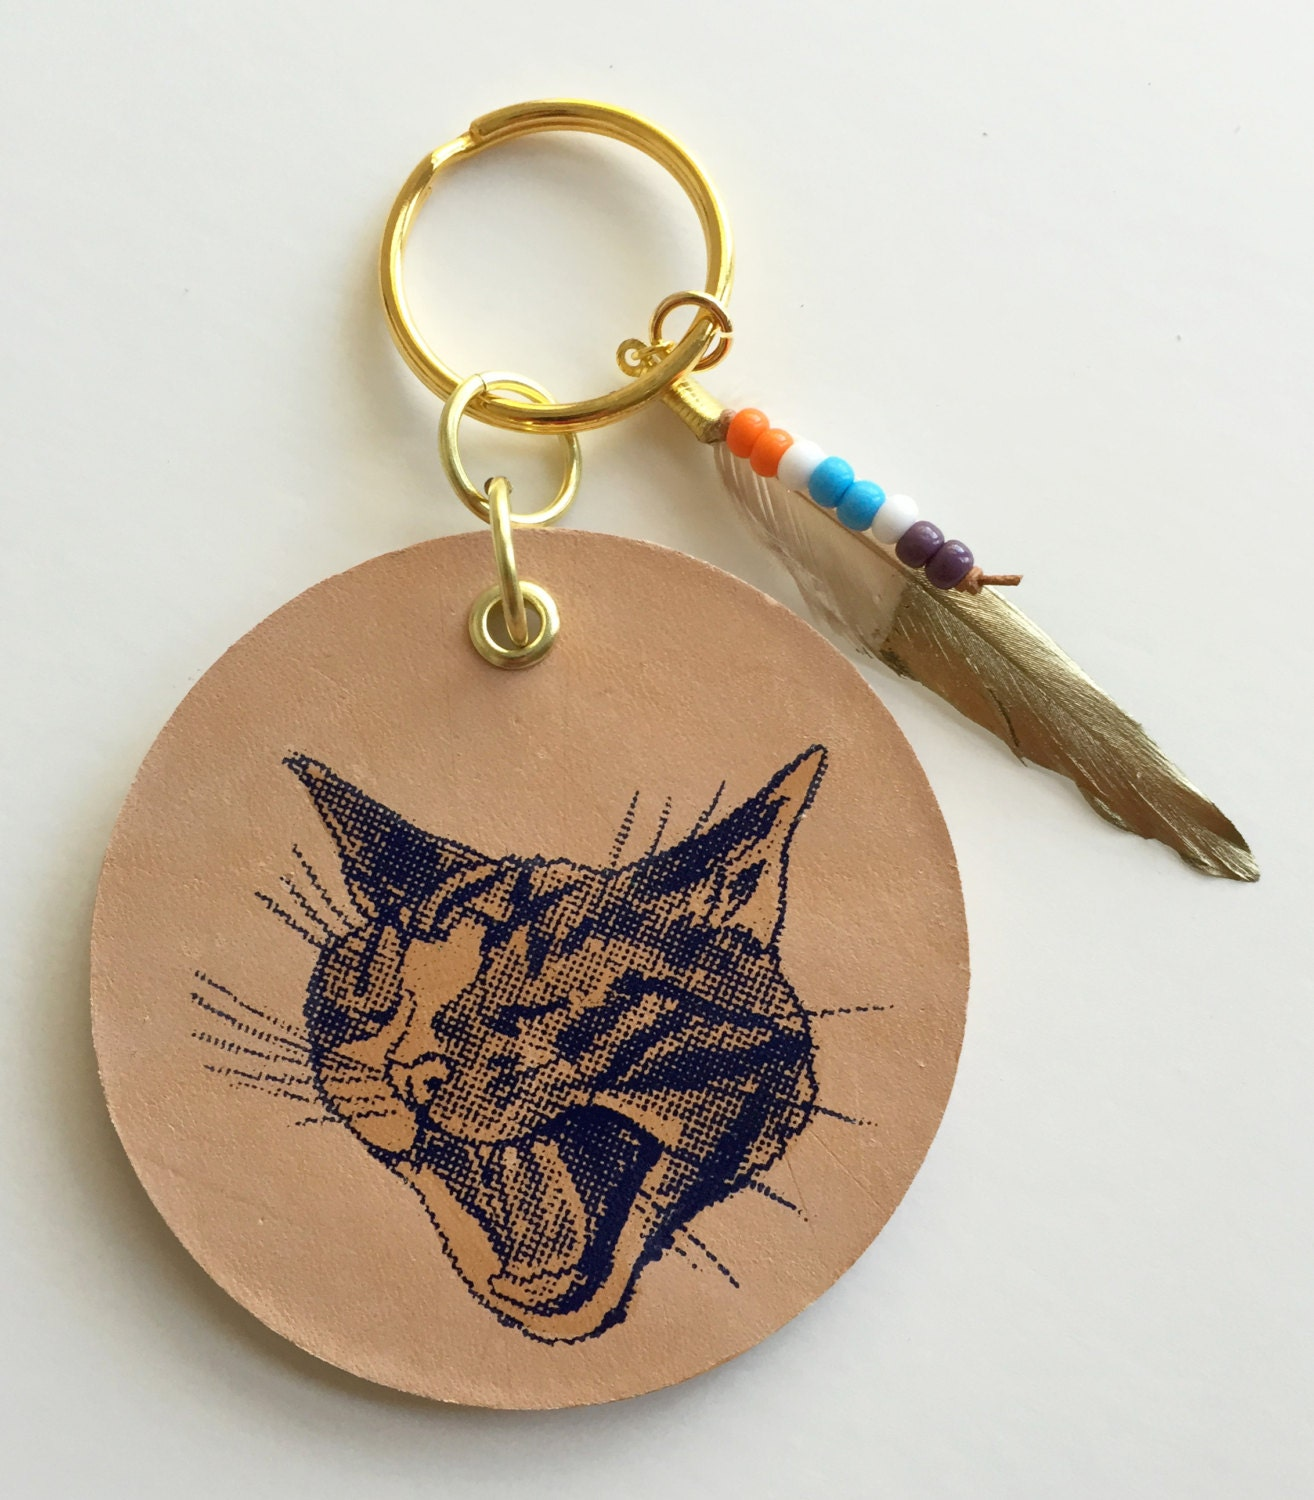 Keychains Circuit Board Glass Pendant Photo Necklace Keychain Cat Leather With Beads And Feather Charm Potemkin Key Chain Fob